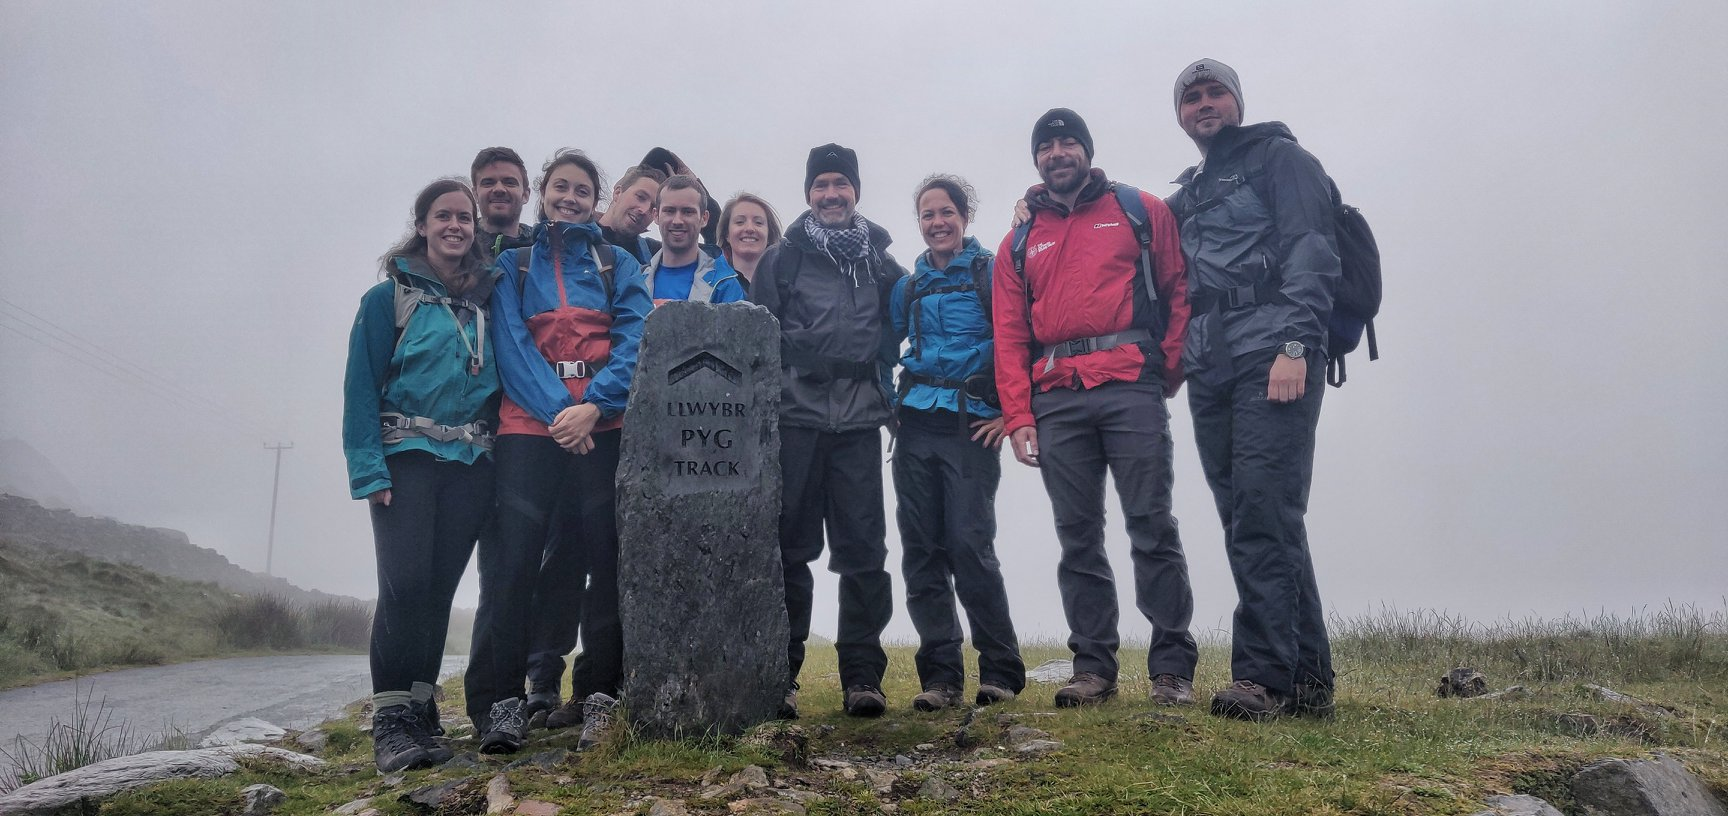 A 3 national 3 peaks group heading up to Snowdon summit